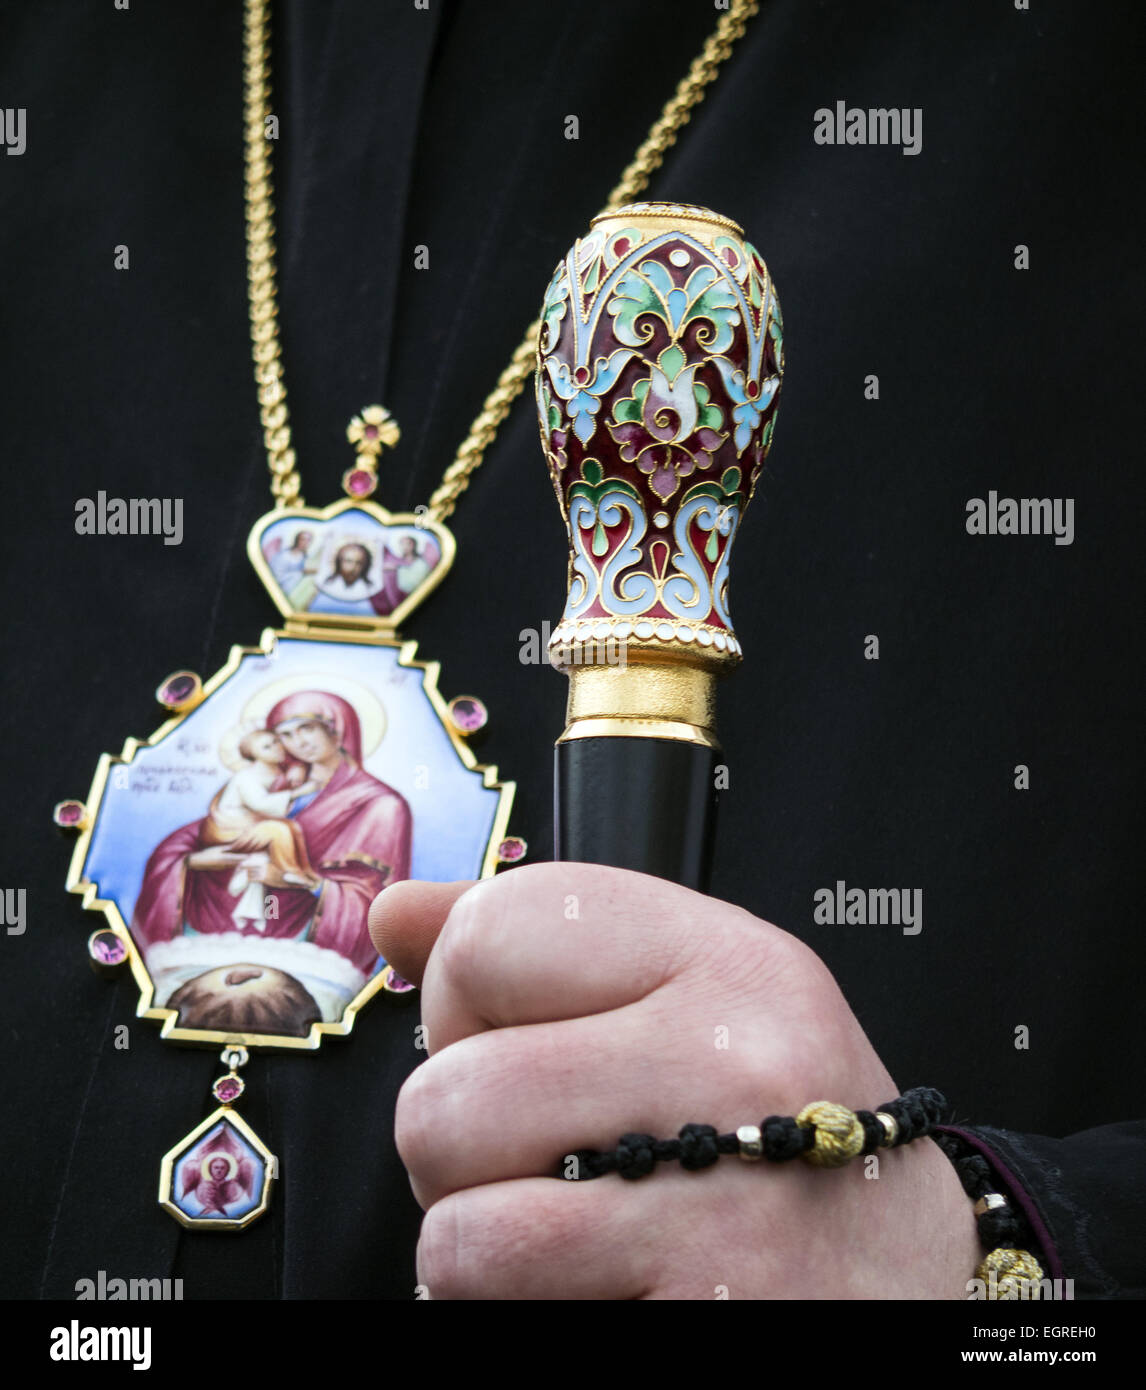 March 1, 2015 - Catholic priest holding a stick -- Activists demand the release of Ukrainian government forces pilot - Stock Image